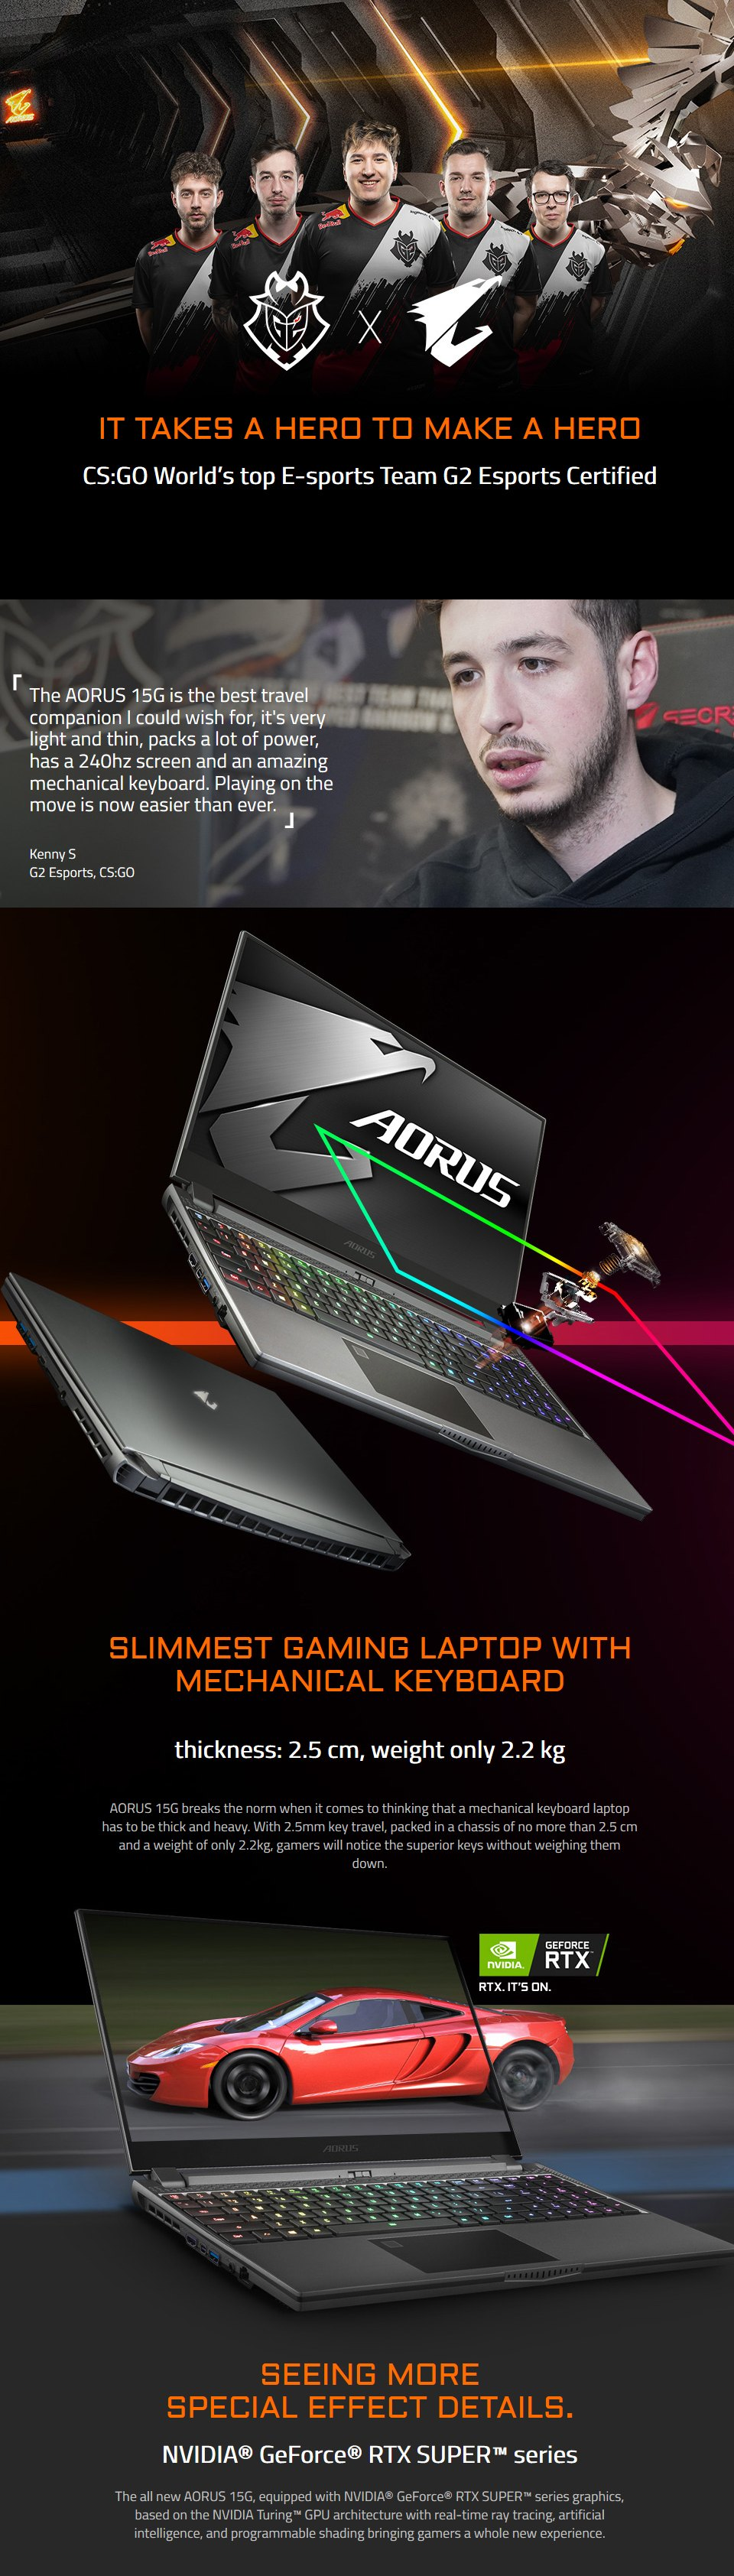 Gigabyte AORUS 15 Core i7 RTX 2070 Super 15.6in 240Hz Gaming Laptop features